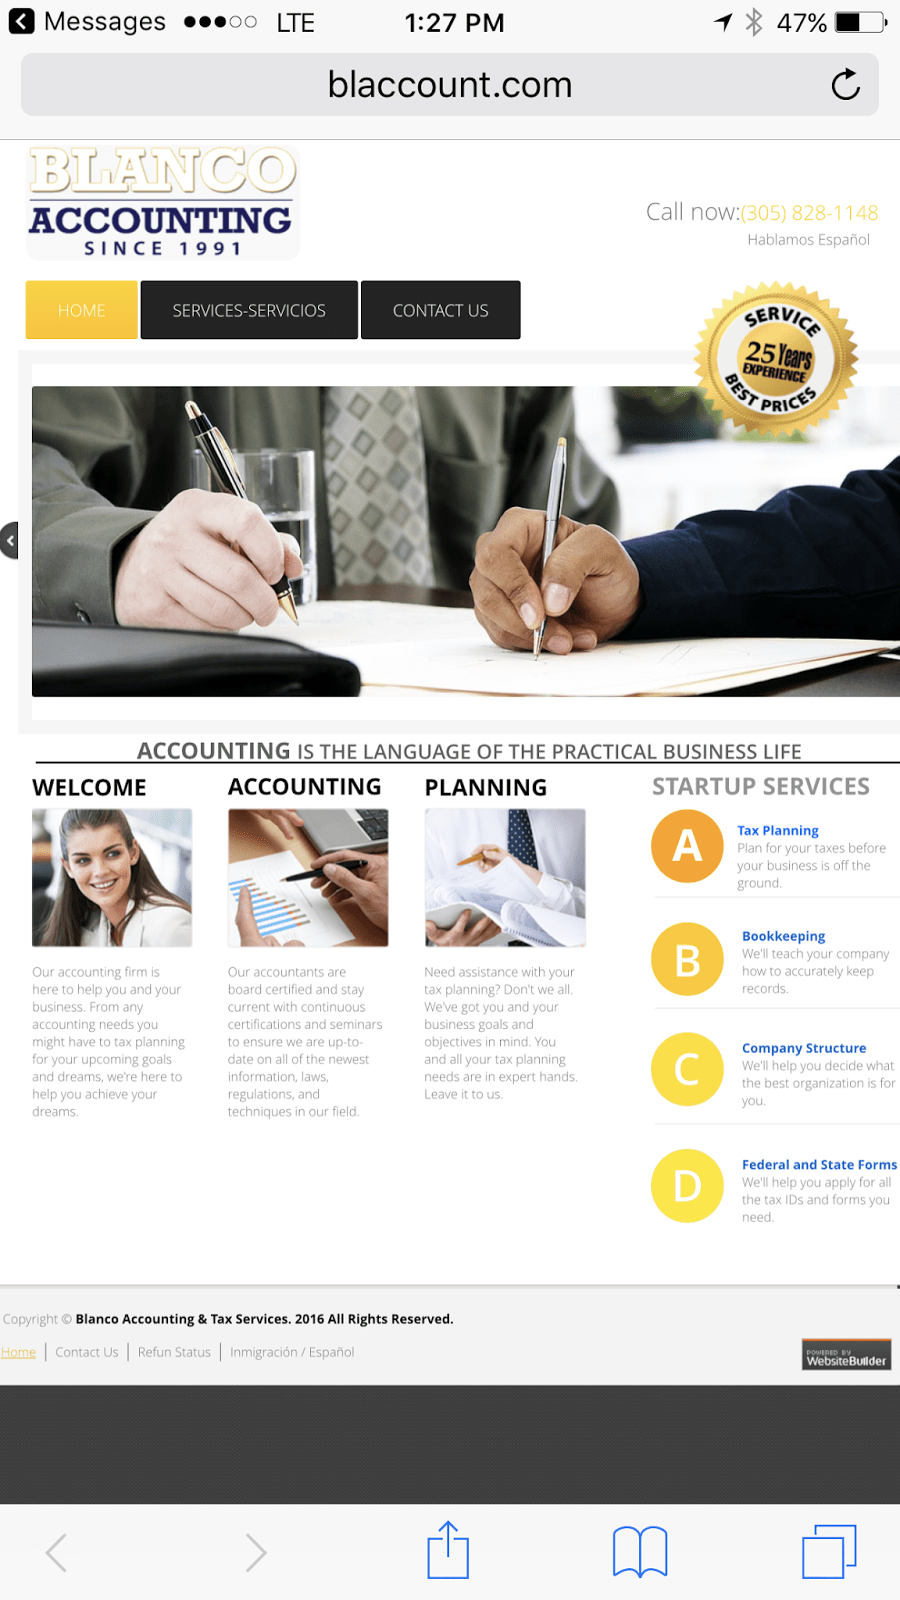 Blanco Accounting & Tax Services